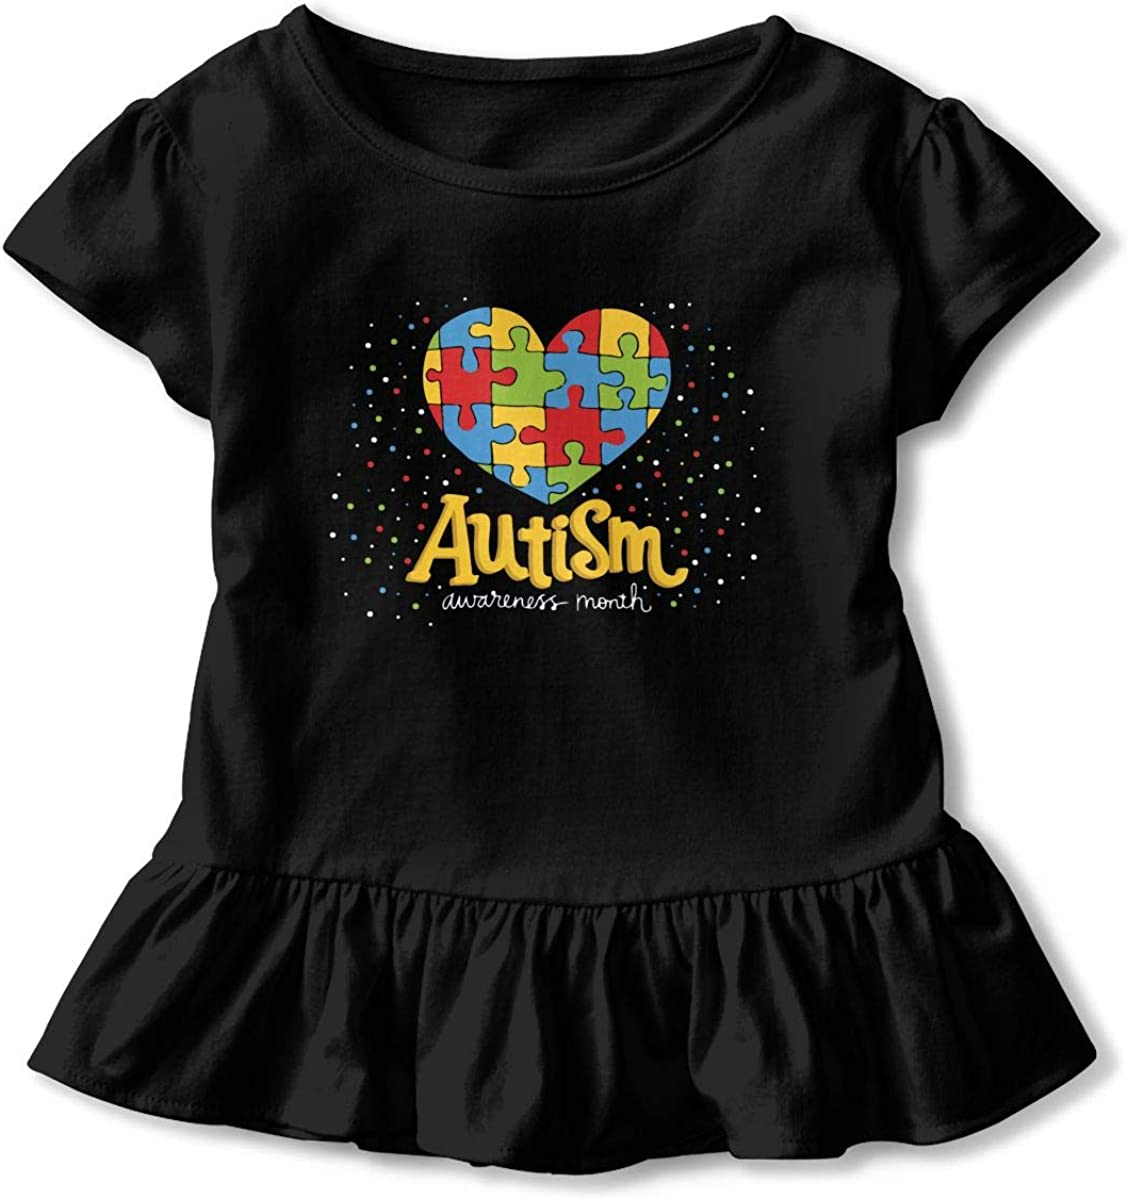 Cheng Jian Bo Show Your Support and Help About Autism Toddler Girls T Shirt Kids Cotton Short Sleeve Ruffle Tee